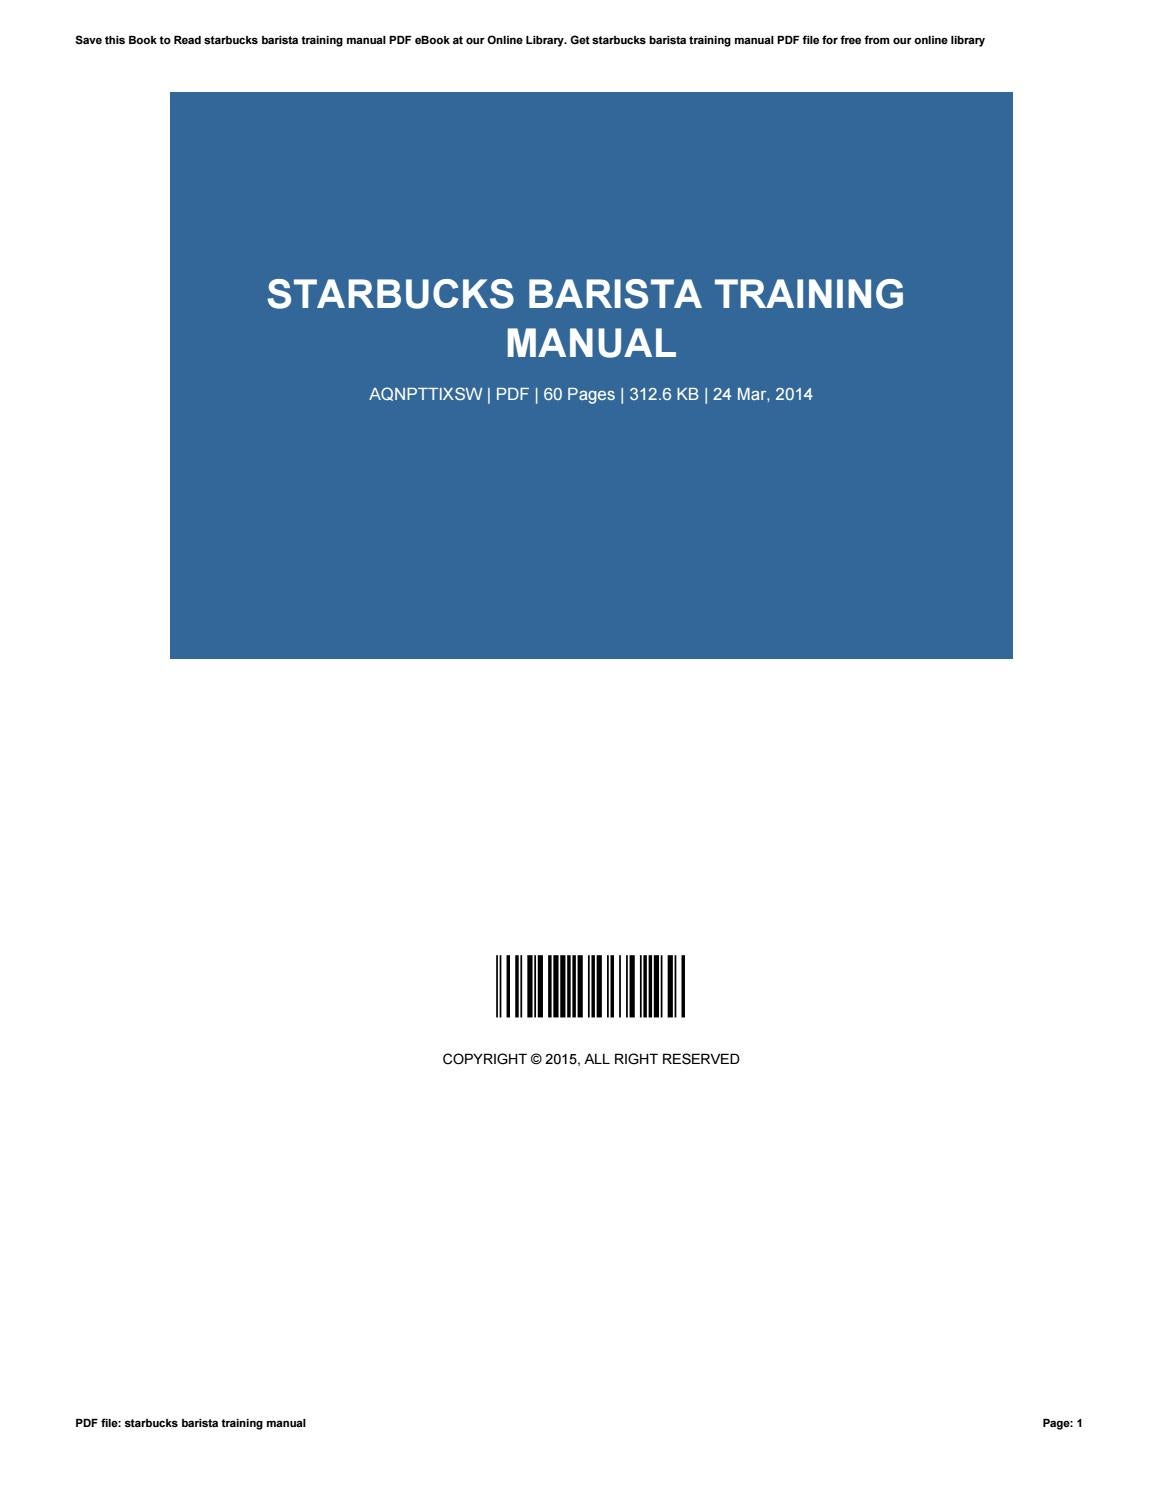 what is a training manual